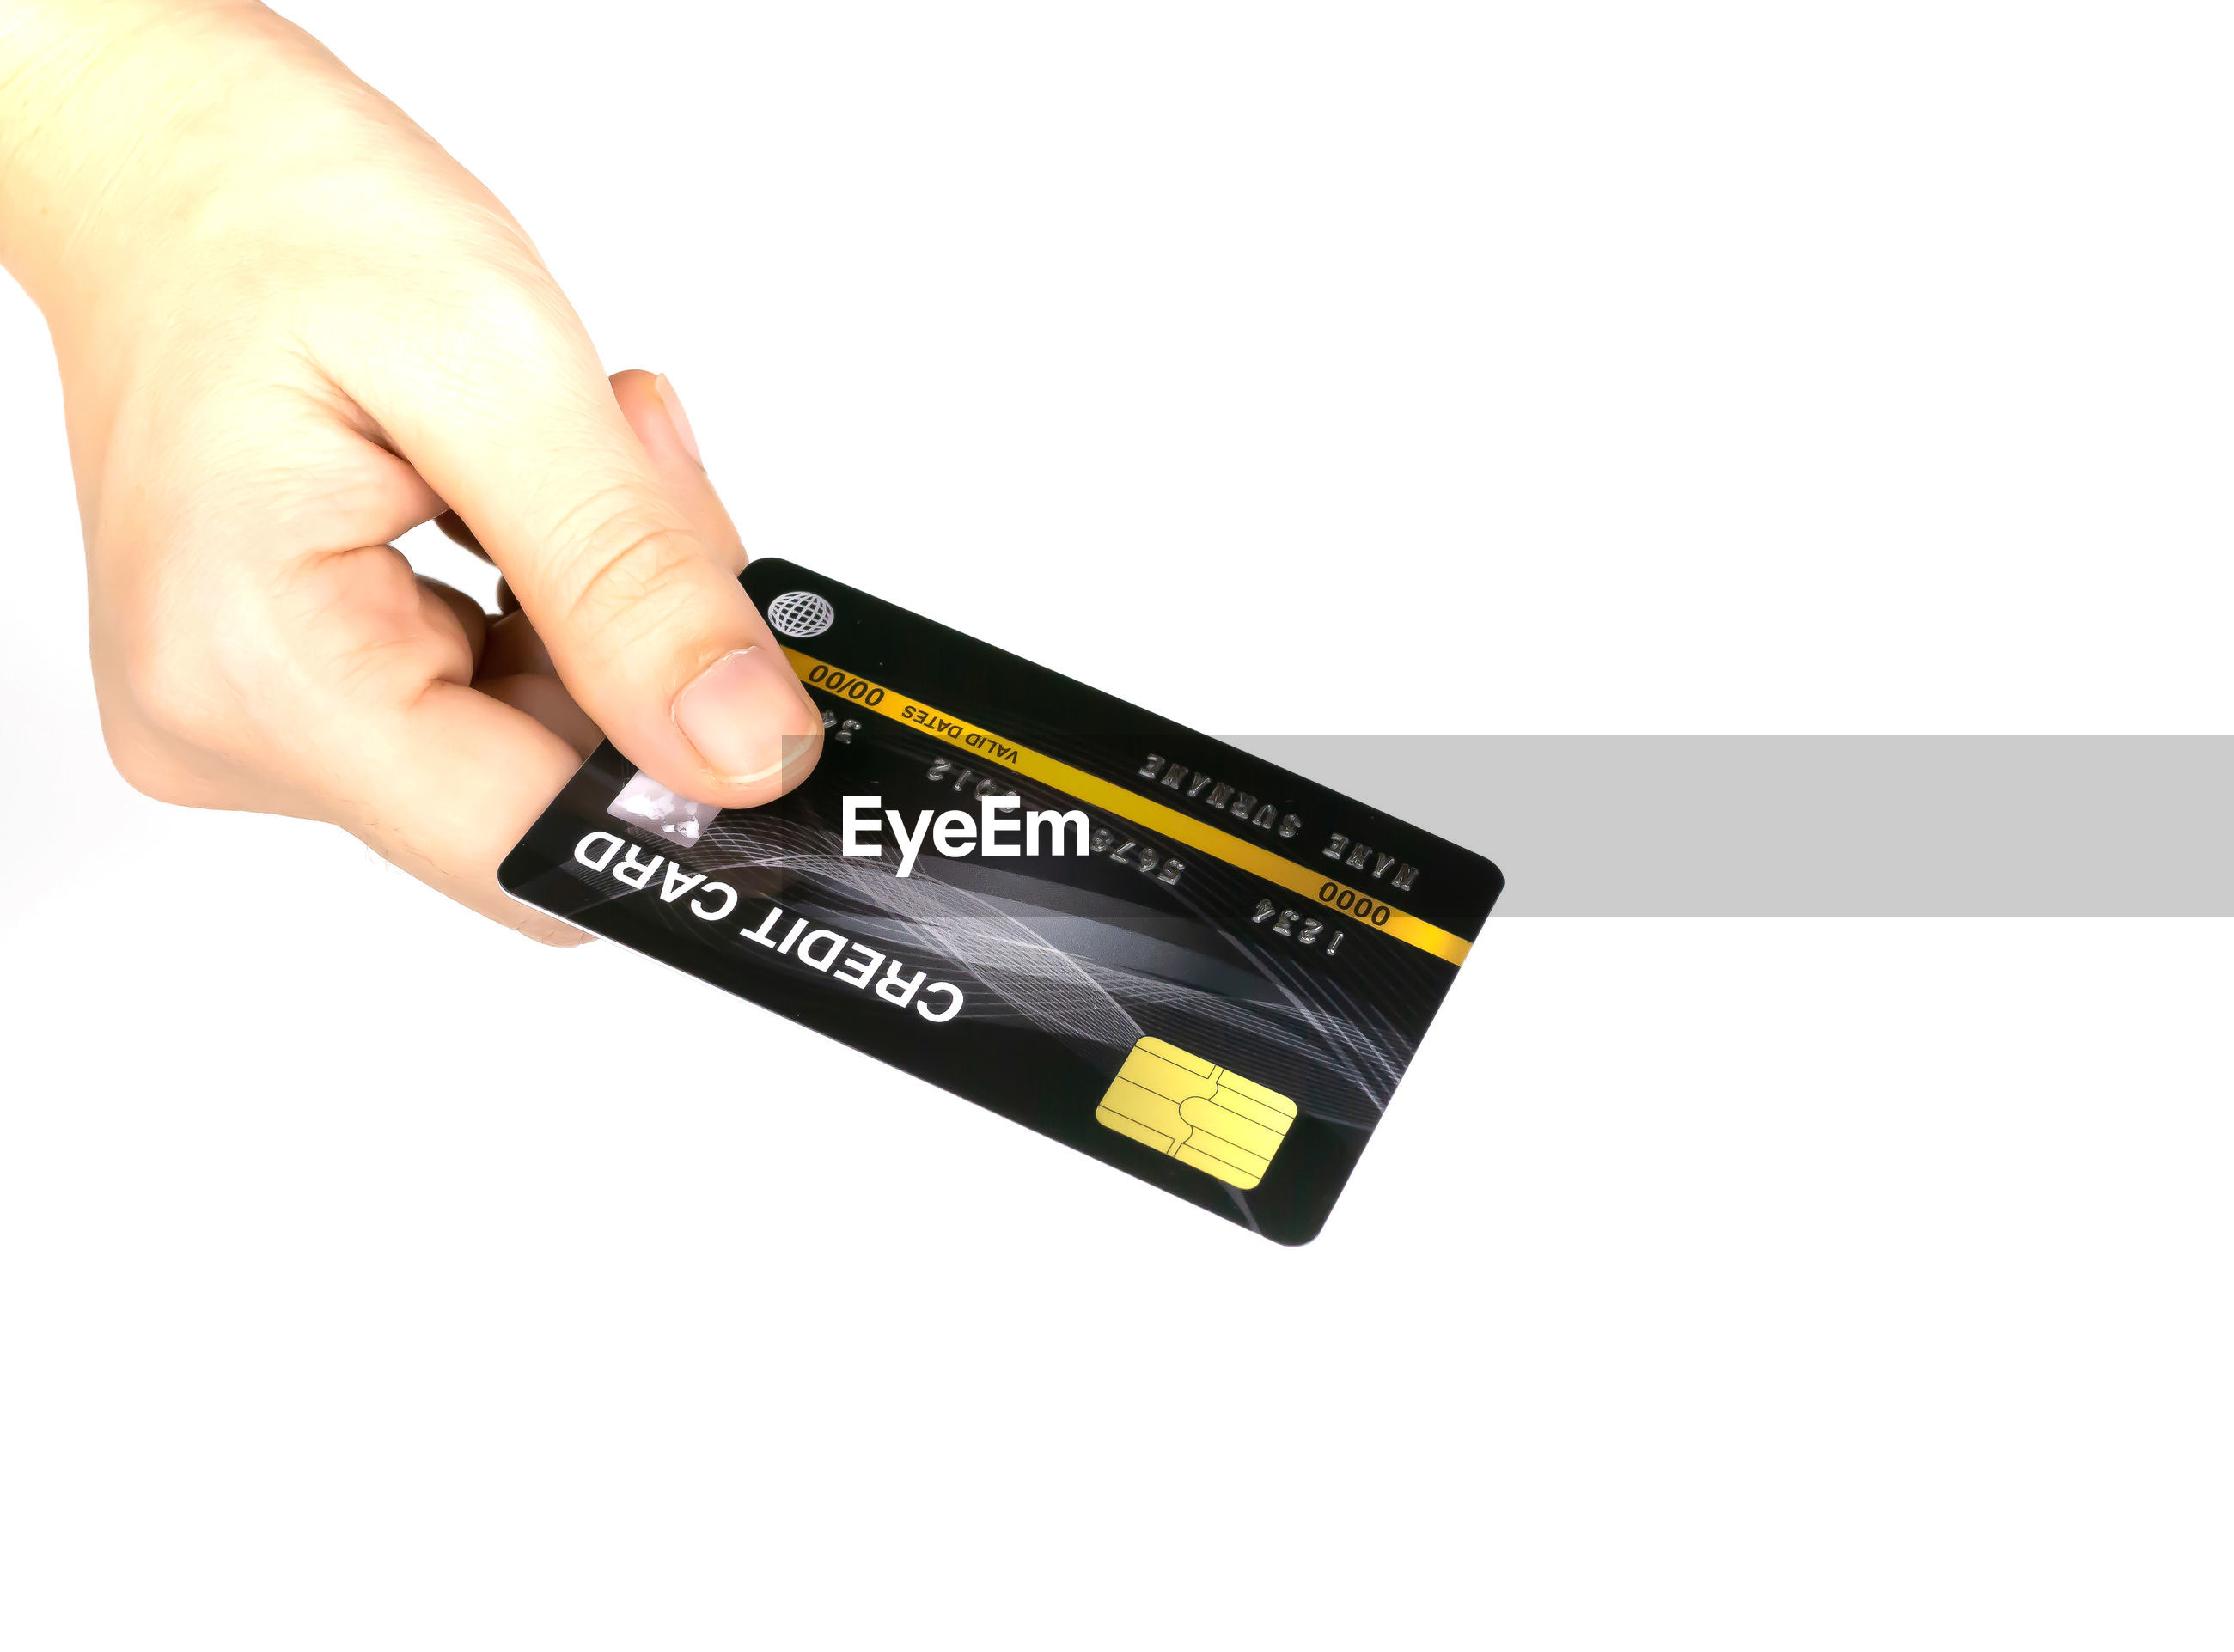 Cropped hand of person holding credit card against white background